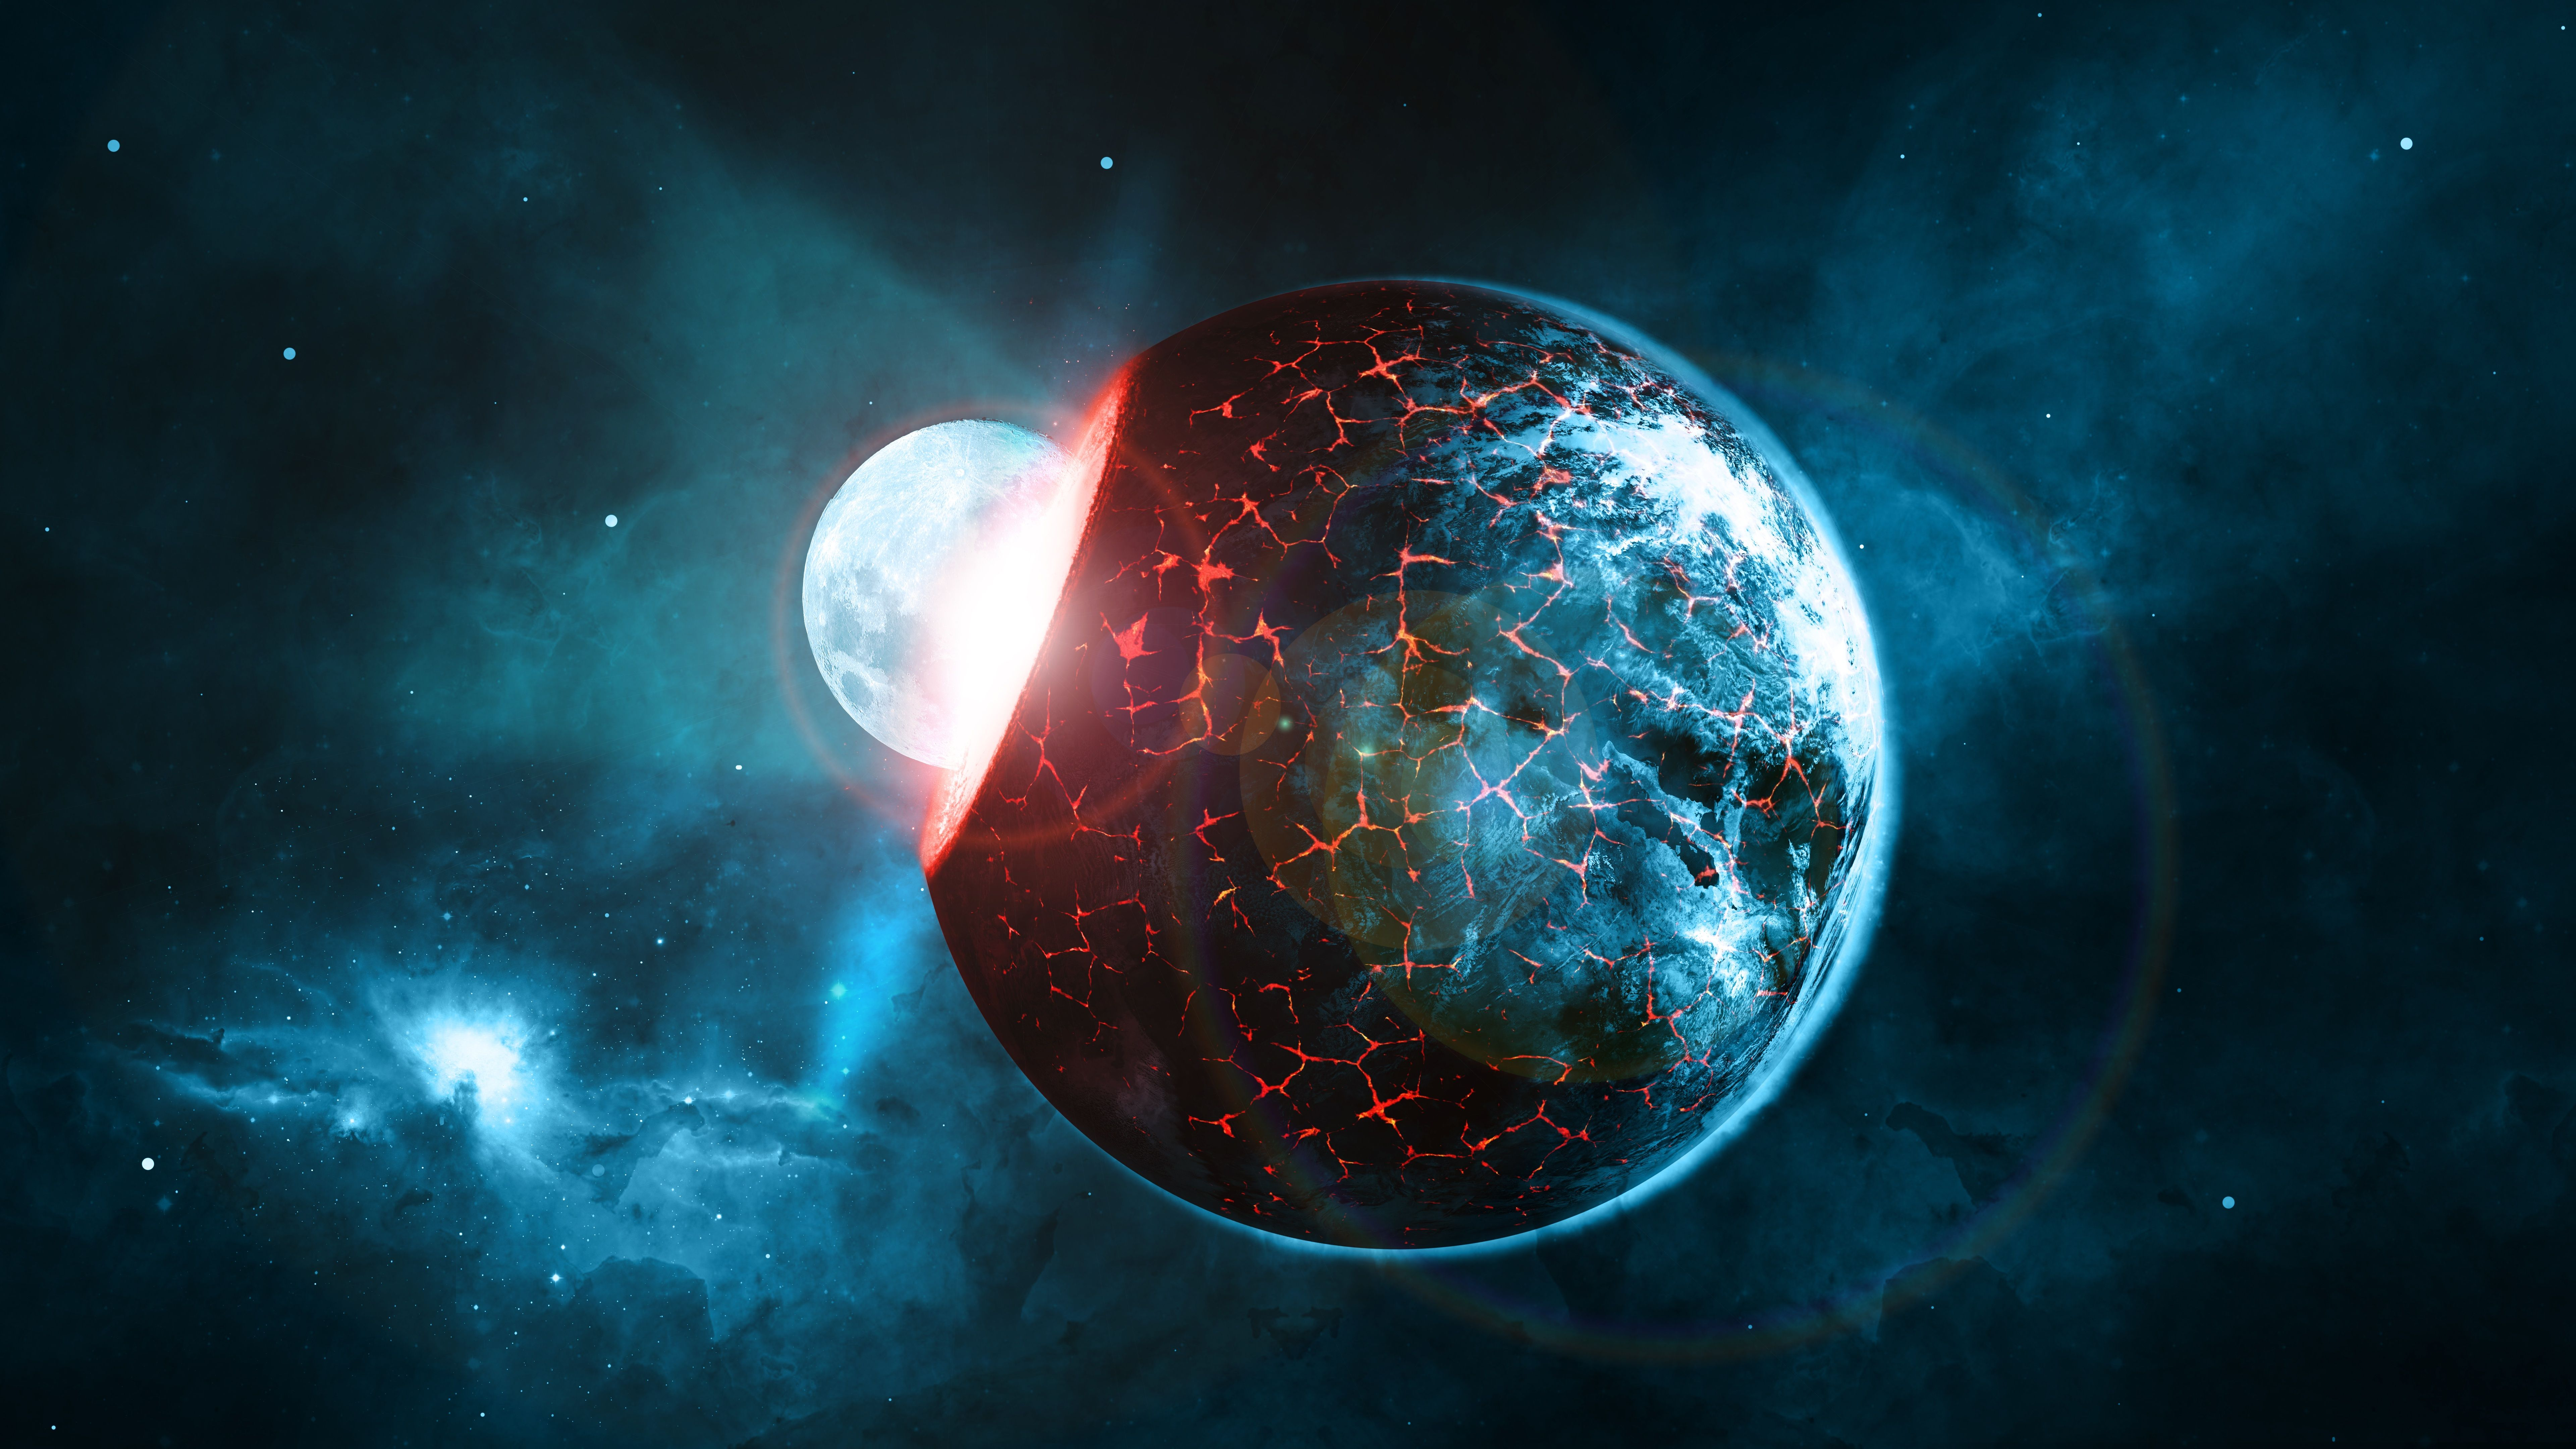 8K Universe Wallpapers - Top Free 8K Universe Backgrounds ...